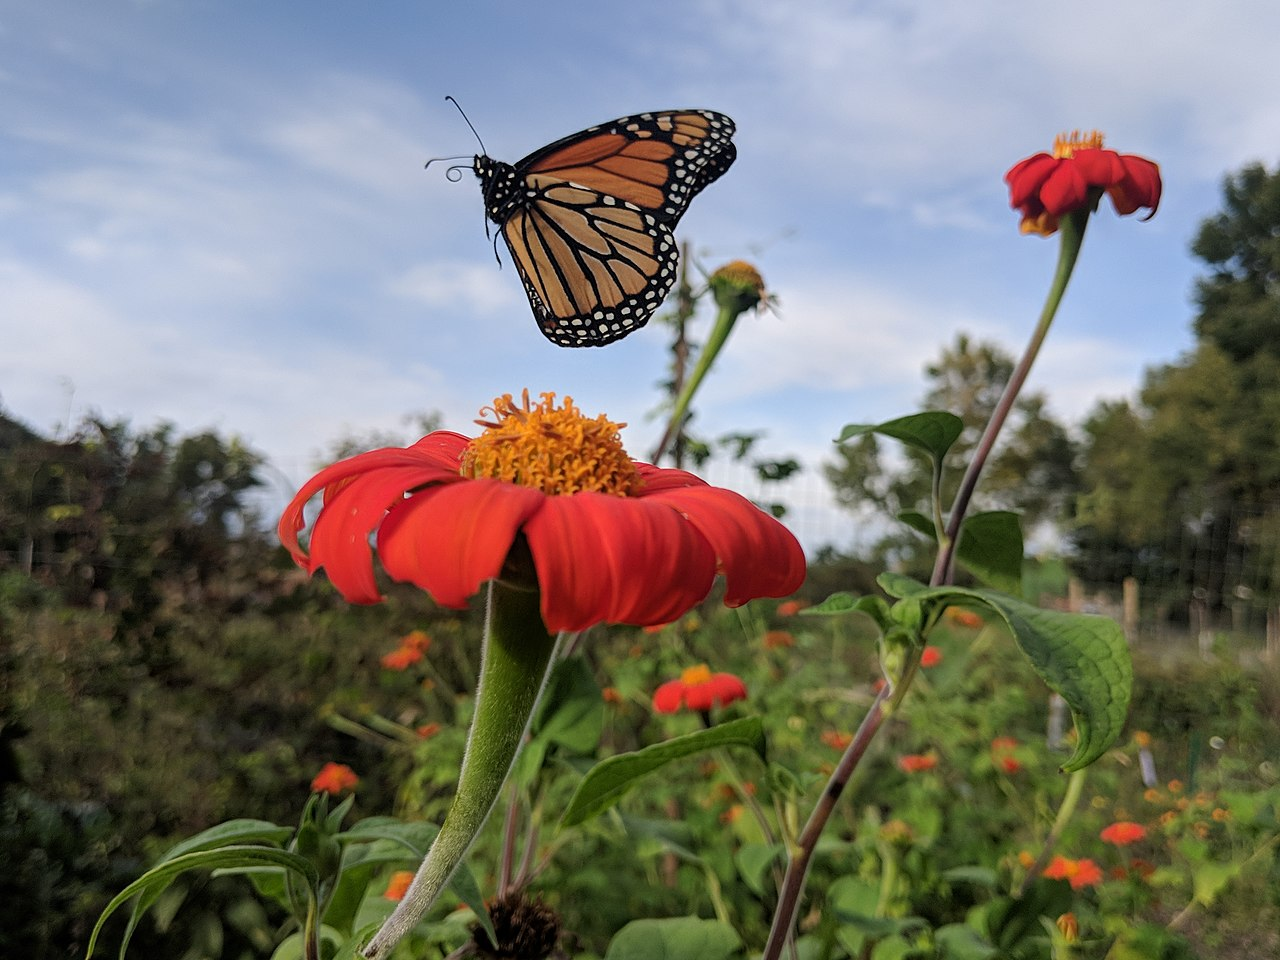 1280px-Monarch_butterfly_flying_away_from_a_Mexican_sunflower.0.jpg